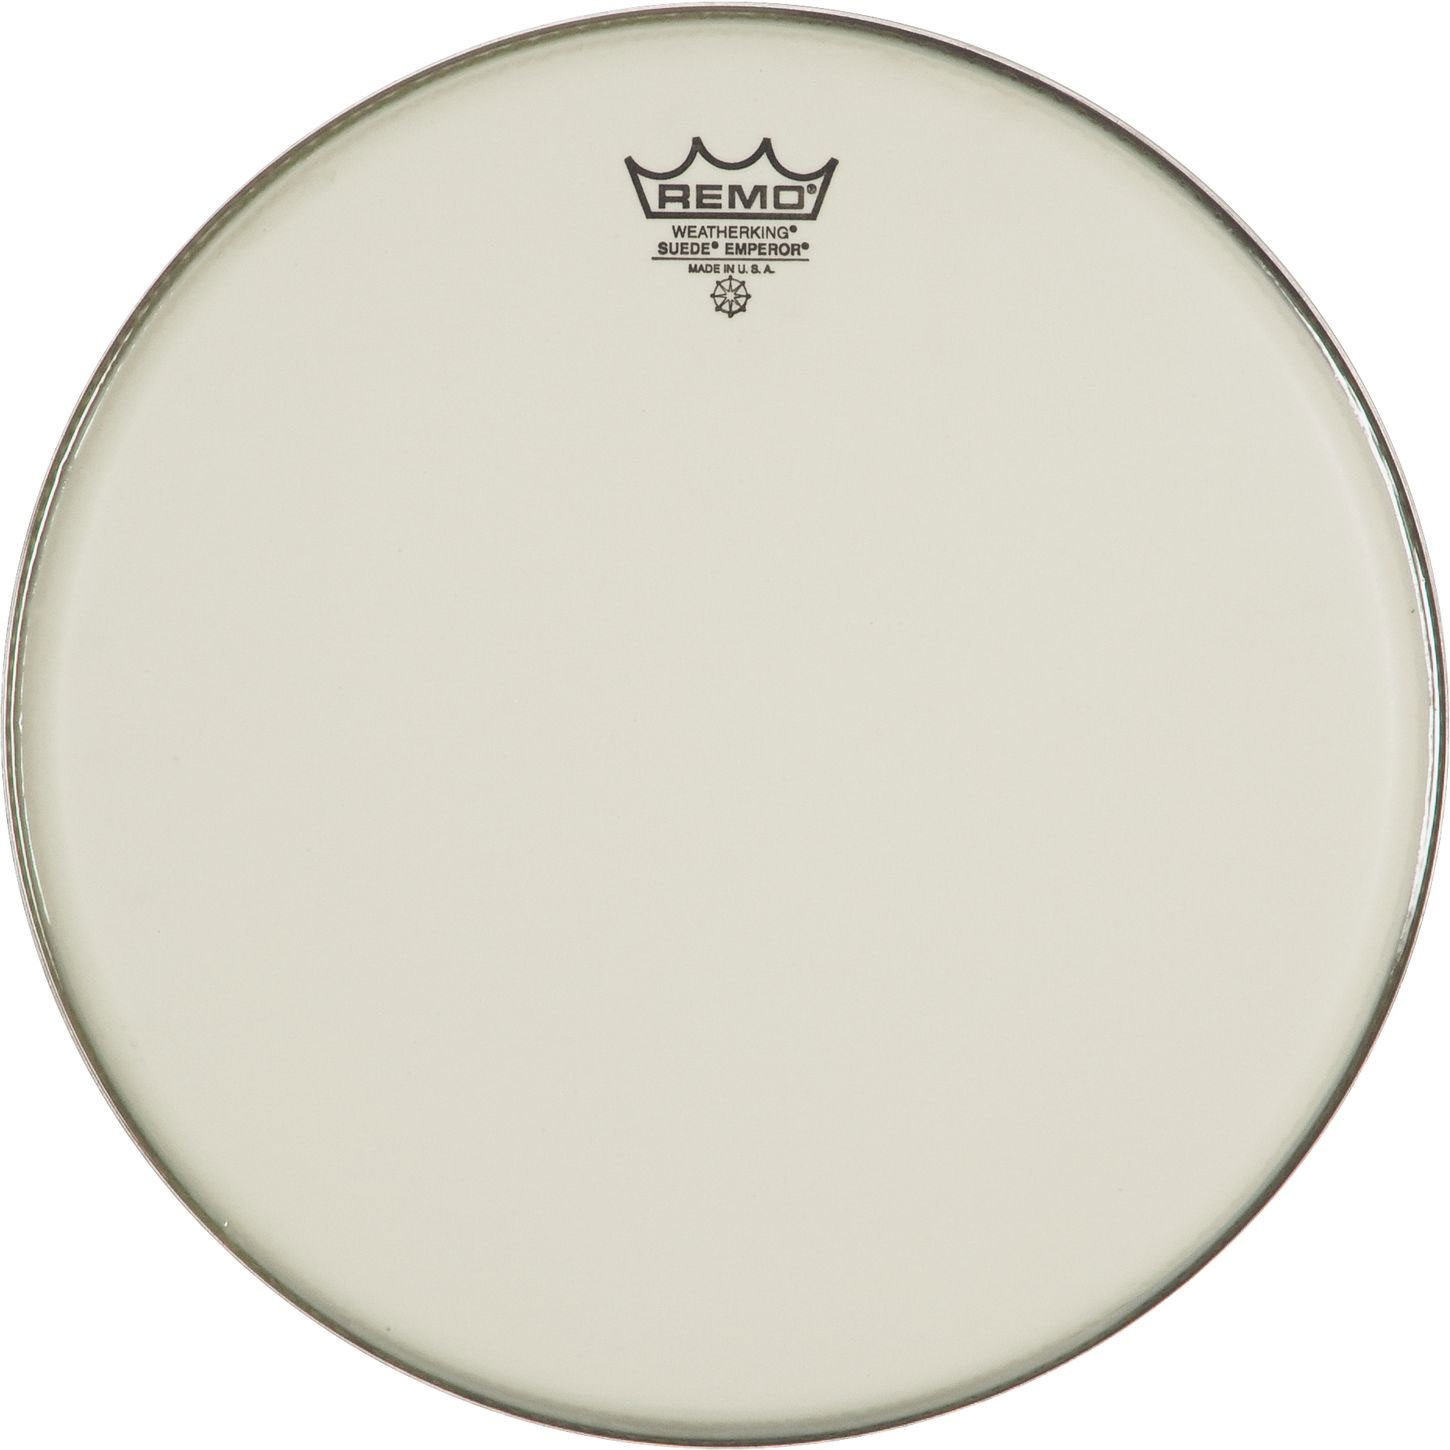 "Remo 14"" Emperor Suede Drum Head"